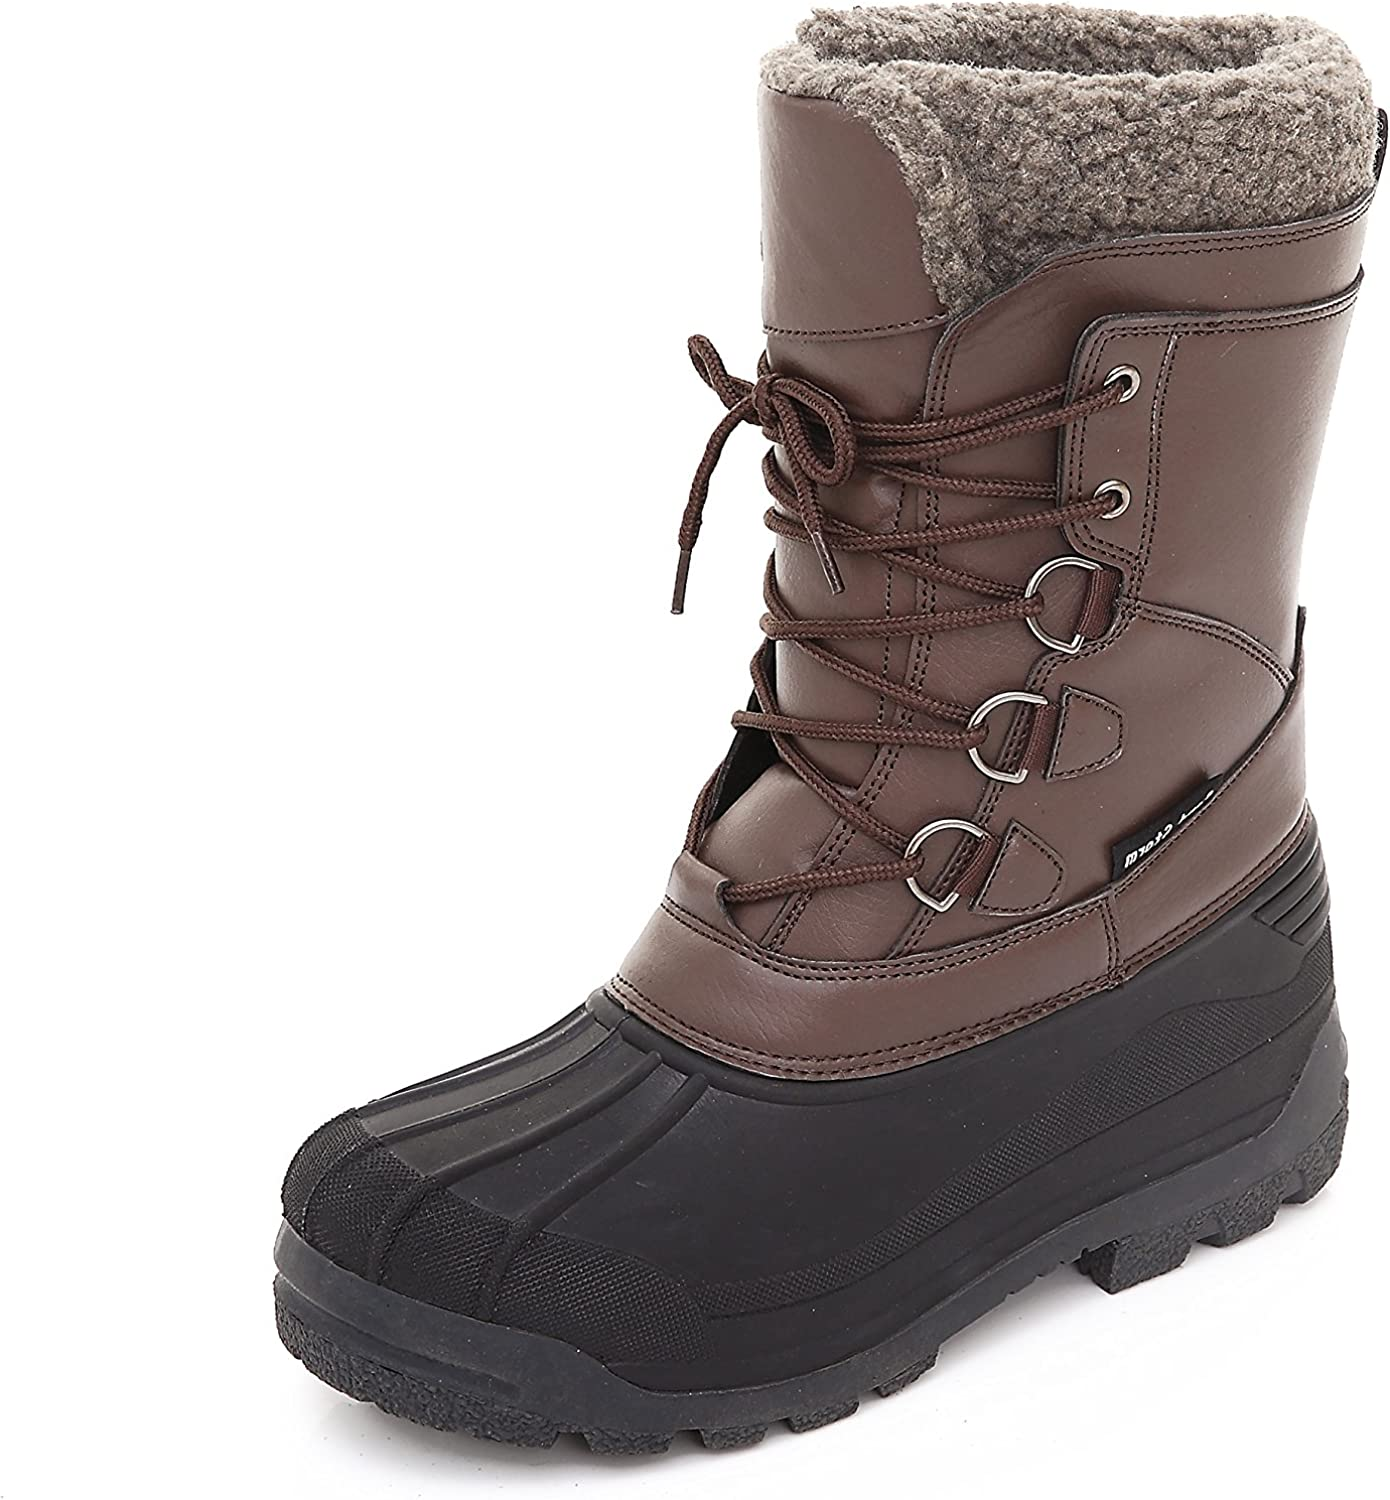 Leisfit Mens Outdoor Winter Waterproof Boots Warm Insulated Fur Snow Boots Work Hiking Booties for Men